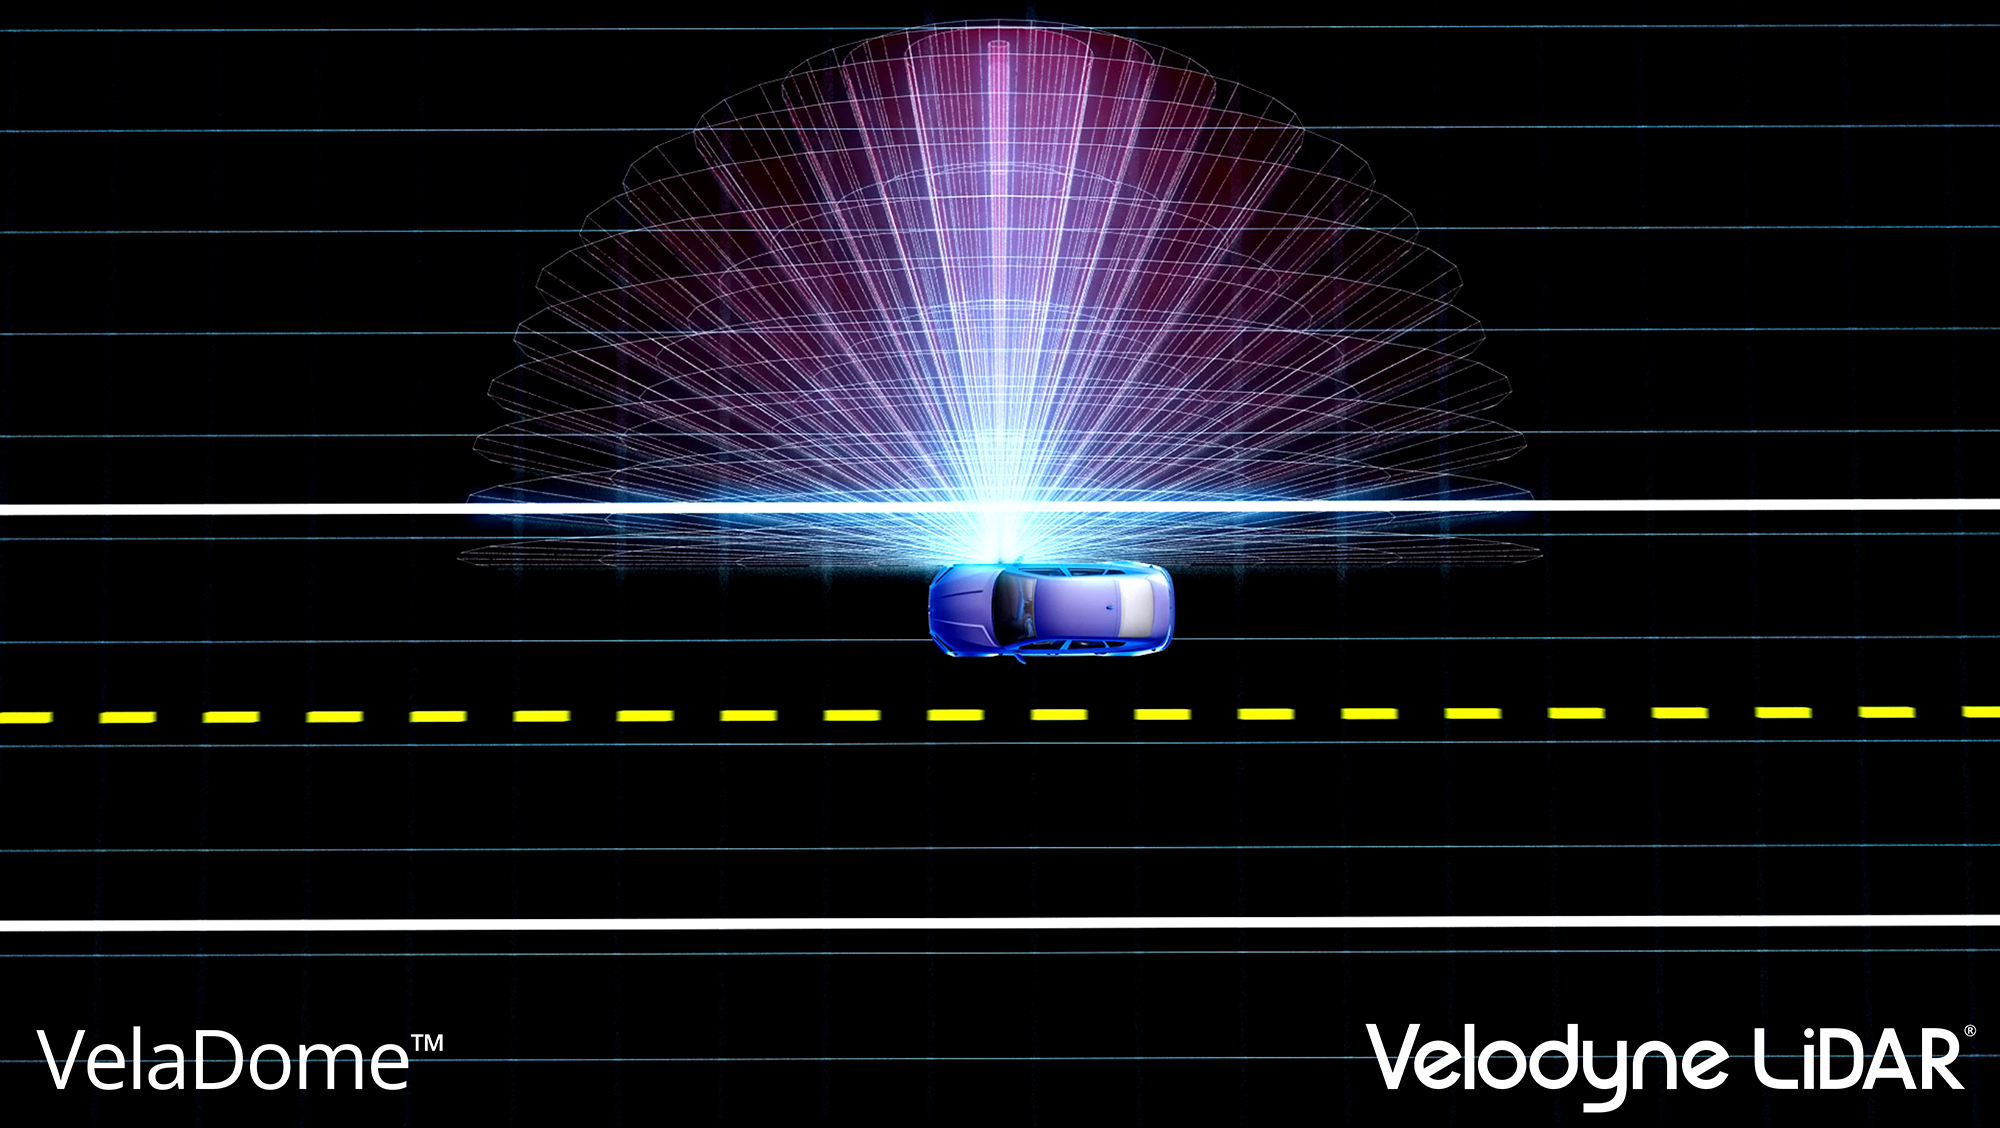 Velodyne Lidar to Present Breakthrough Technology for Autonomy and